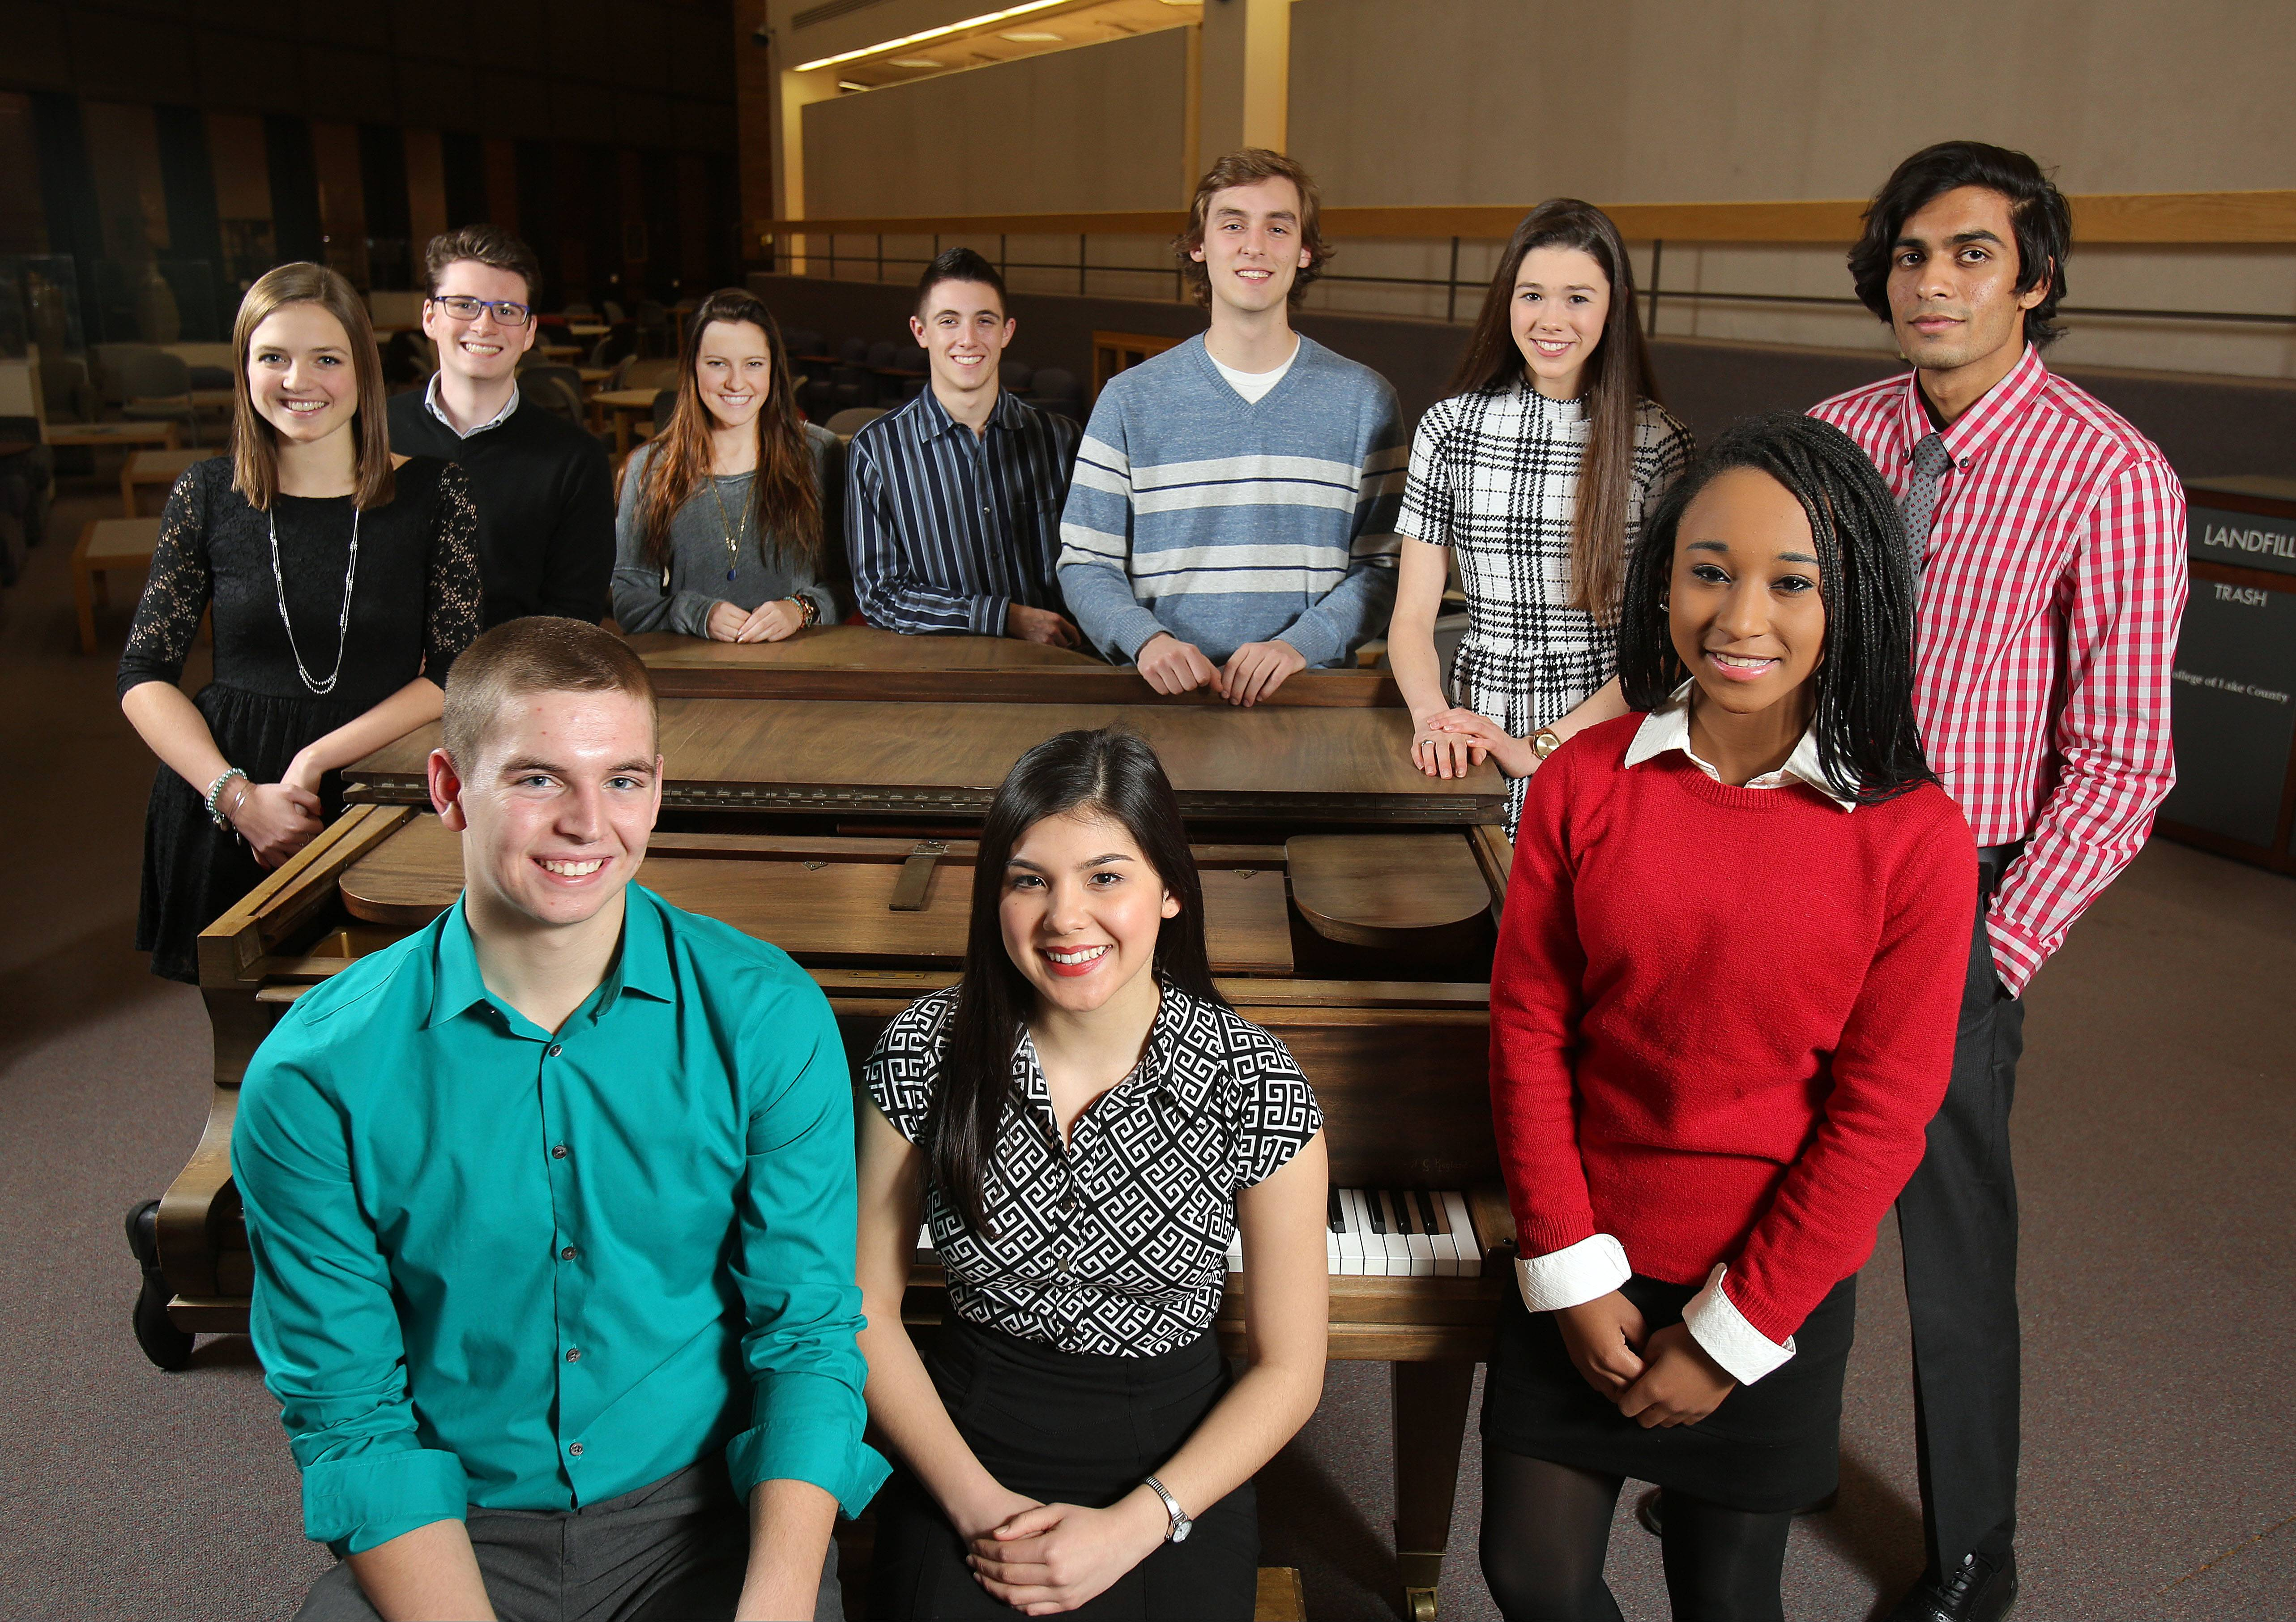 The 2015-16 Lake County Leadership Team gathers at College of Lake County in Grayslake. Behind the piano, from left: Meghan Fitzgerald, Grayslake Central High School; Connor Leden, Warren Township High School; Olivia Sorenson, Adlai E. Stevenson High School; Ben Panitch, Adlai E. Stevenson High School; Dan Marshalla, Lake Zurich High School; Eleanore van Marwijk Kooy, Woodlands Academy of the Sacred Heart; Marutinandan Dubey, Grayslake Central High School. In front of the piano, from left: Nathan Borries, Antioch Community High School; Vivian Margaret Lee, Mundelein High School and Nia McClendon, Libertyville High School.